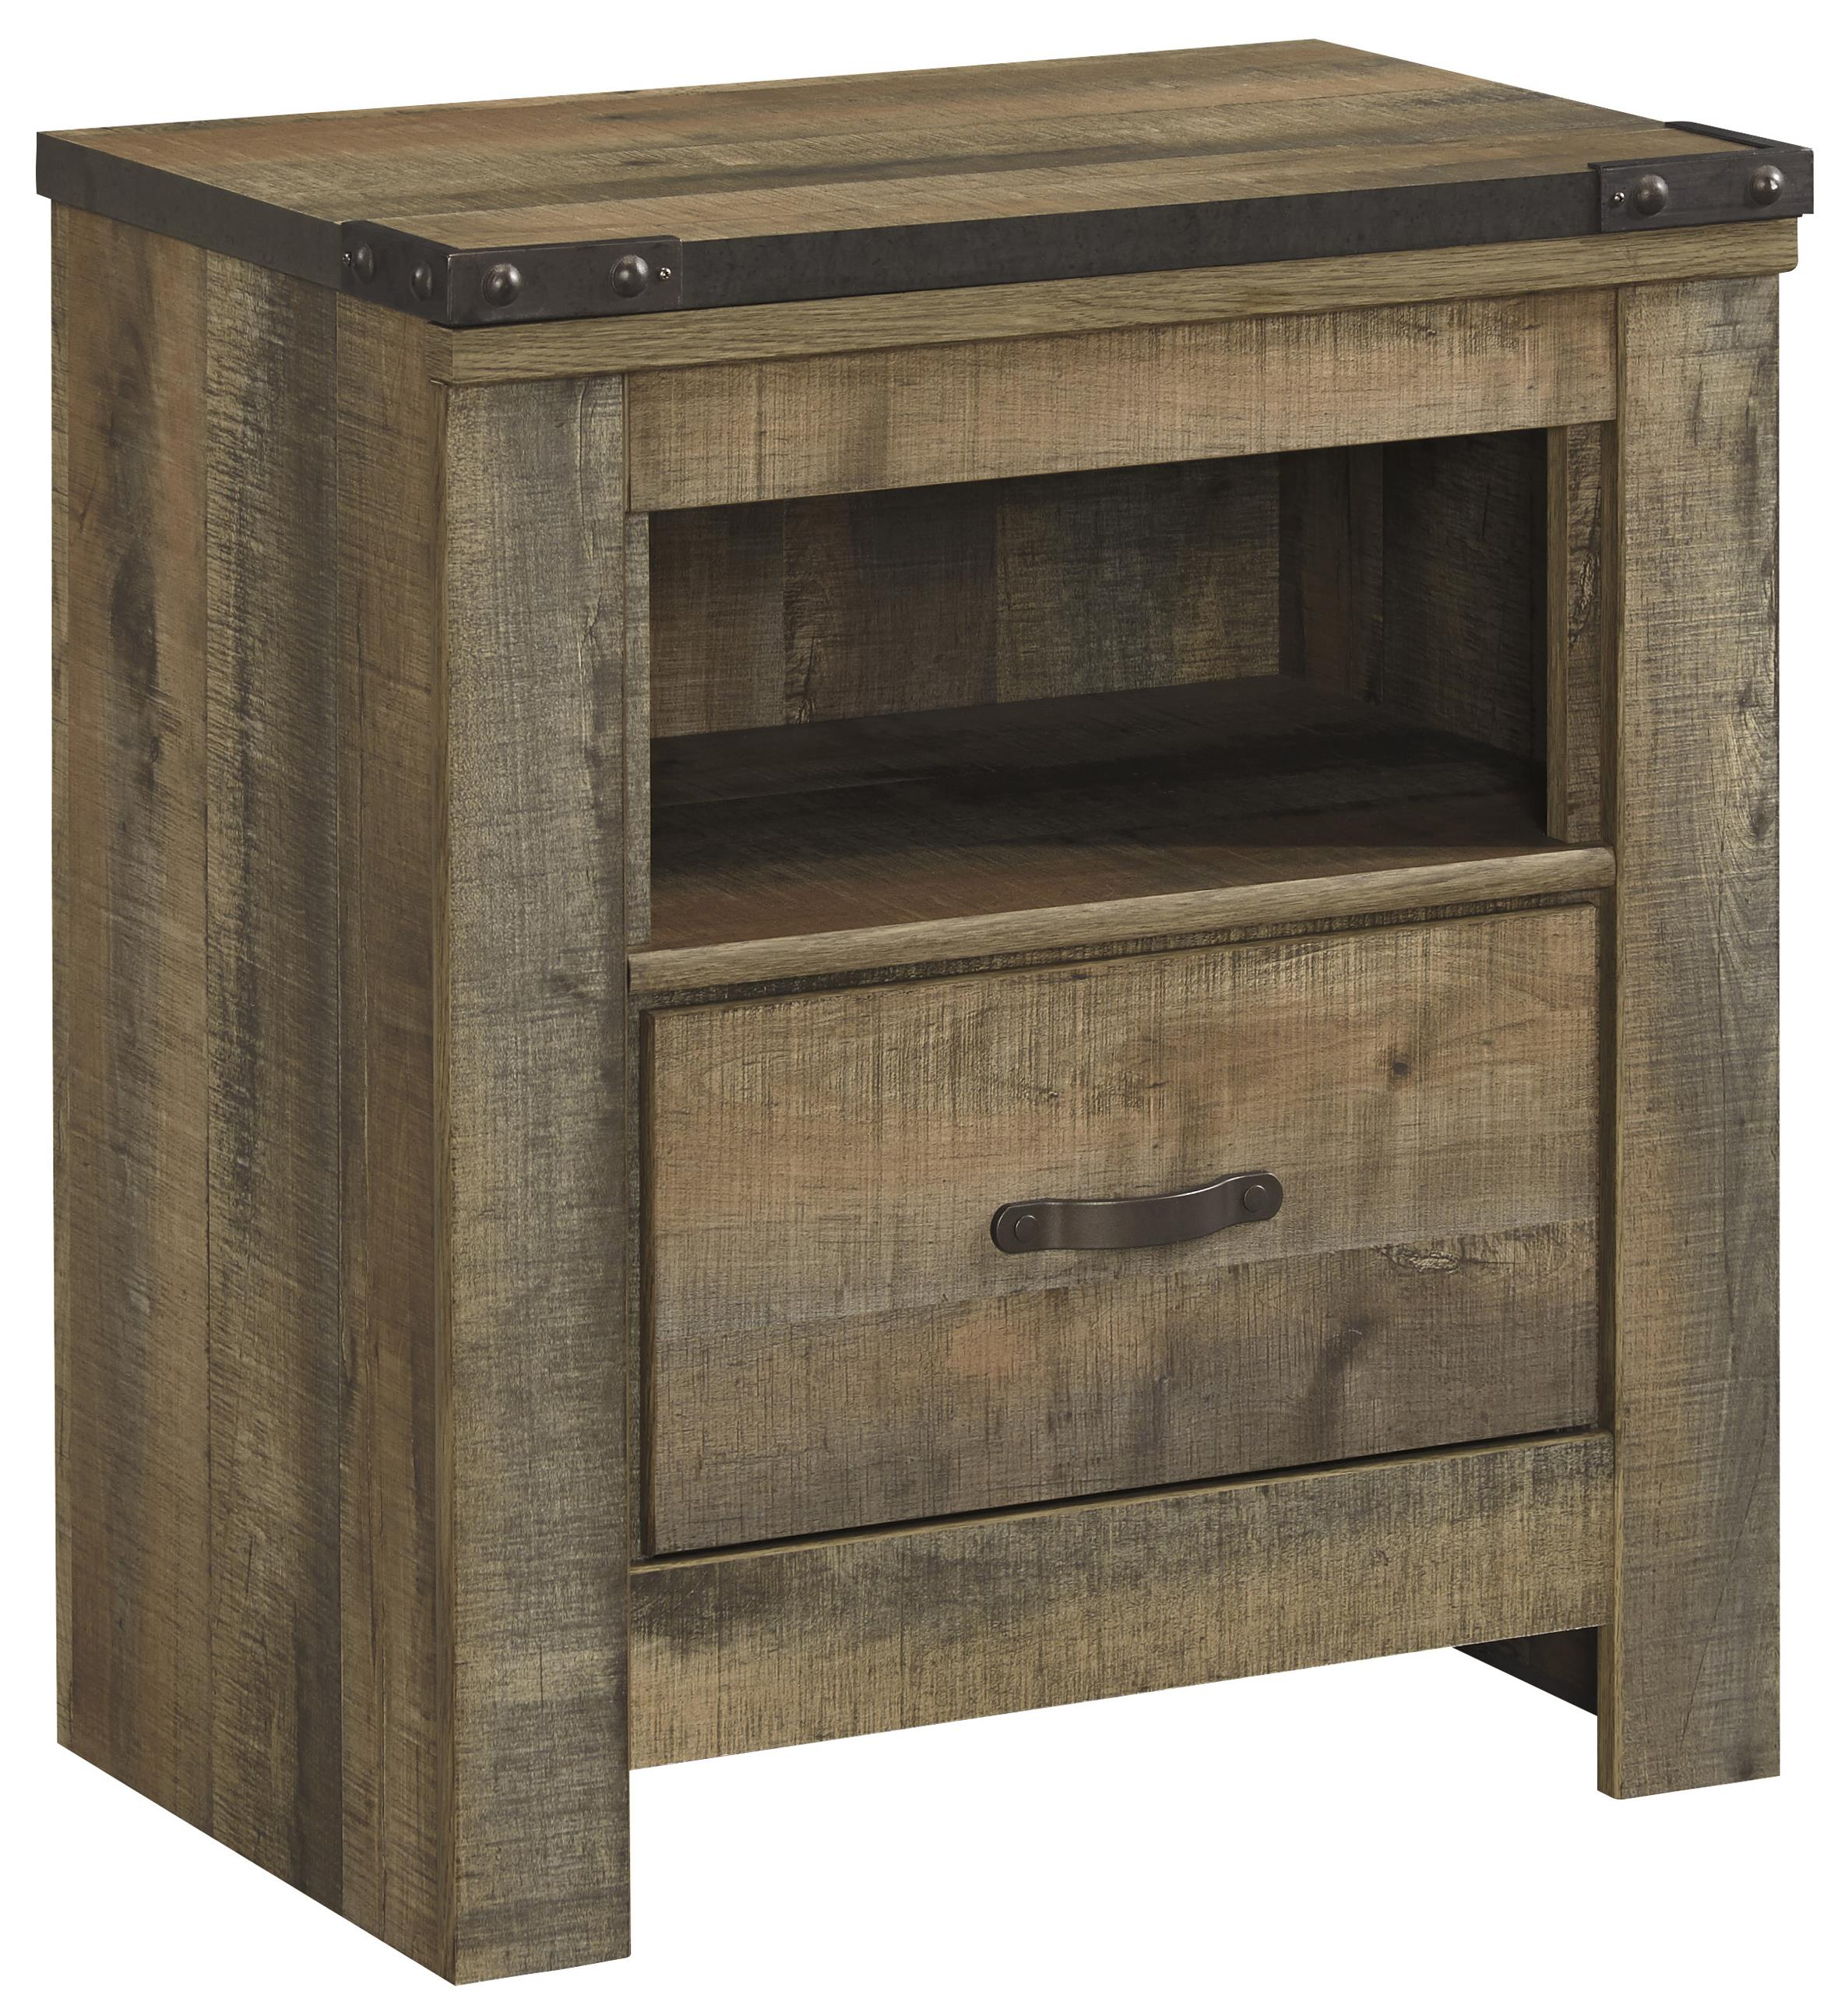 Trinell 1-Drawer Nightstand by Signature Design at Fisher Home Furnishings